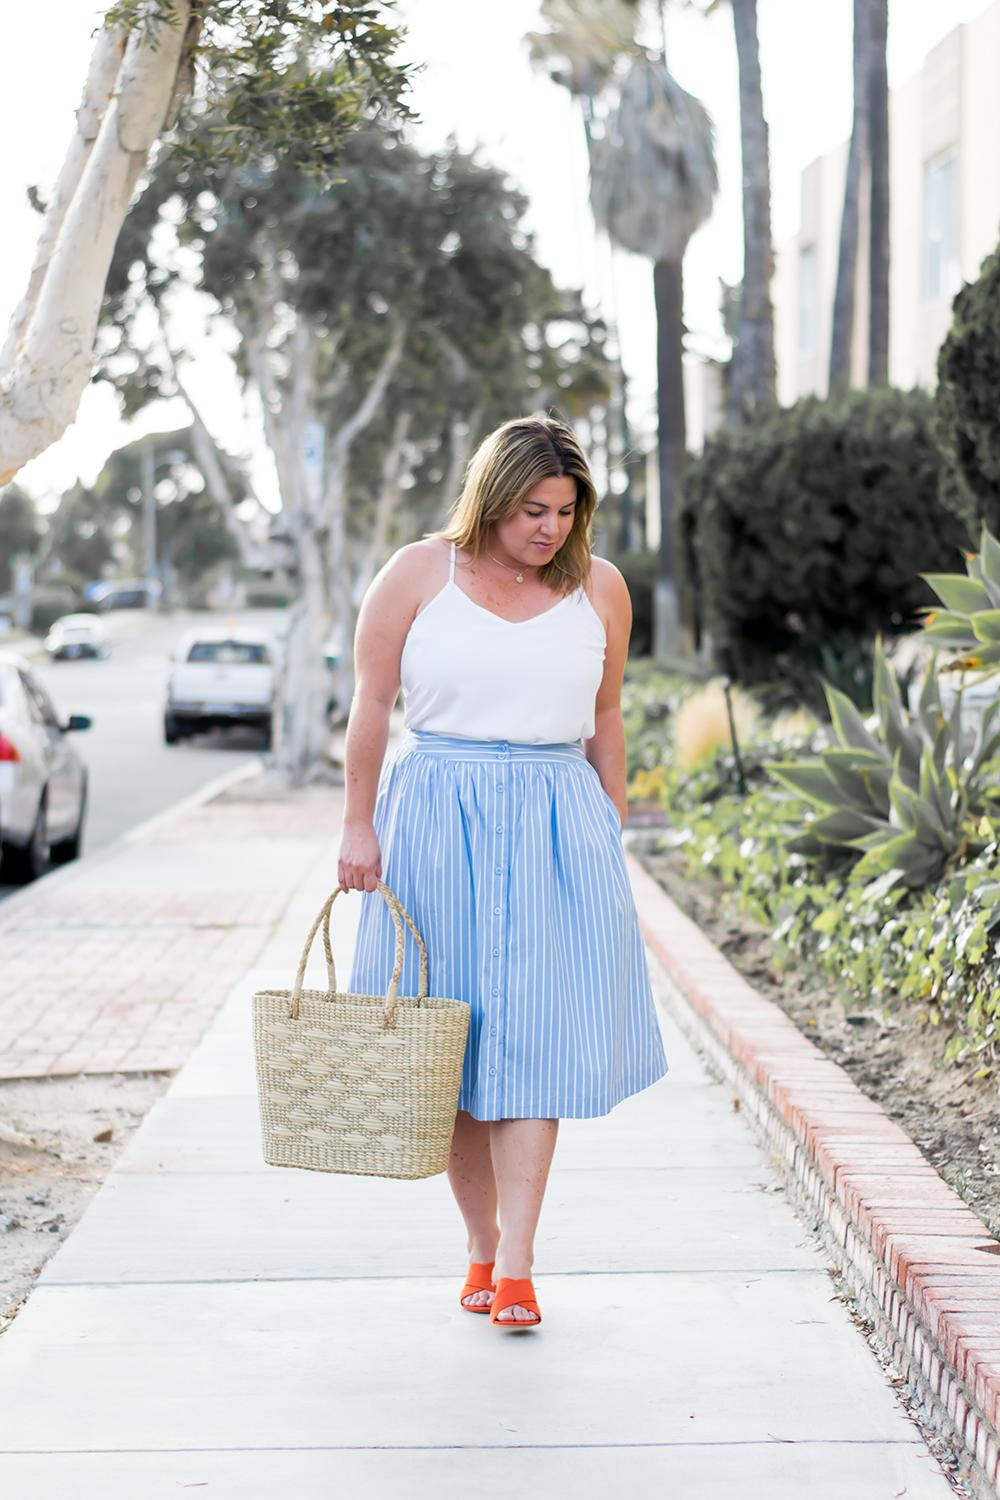 Buttoned-Midi-Skirts-and-Colorful-Mules-Top-Blogger-Outfits-for-2017-Barefoot-in-LA-Fashion-Blog-Style-Ideas_1020